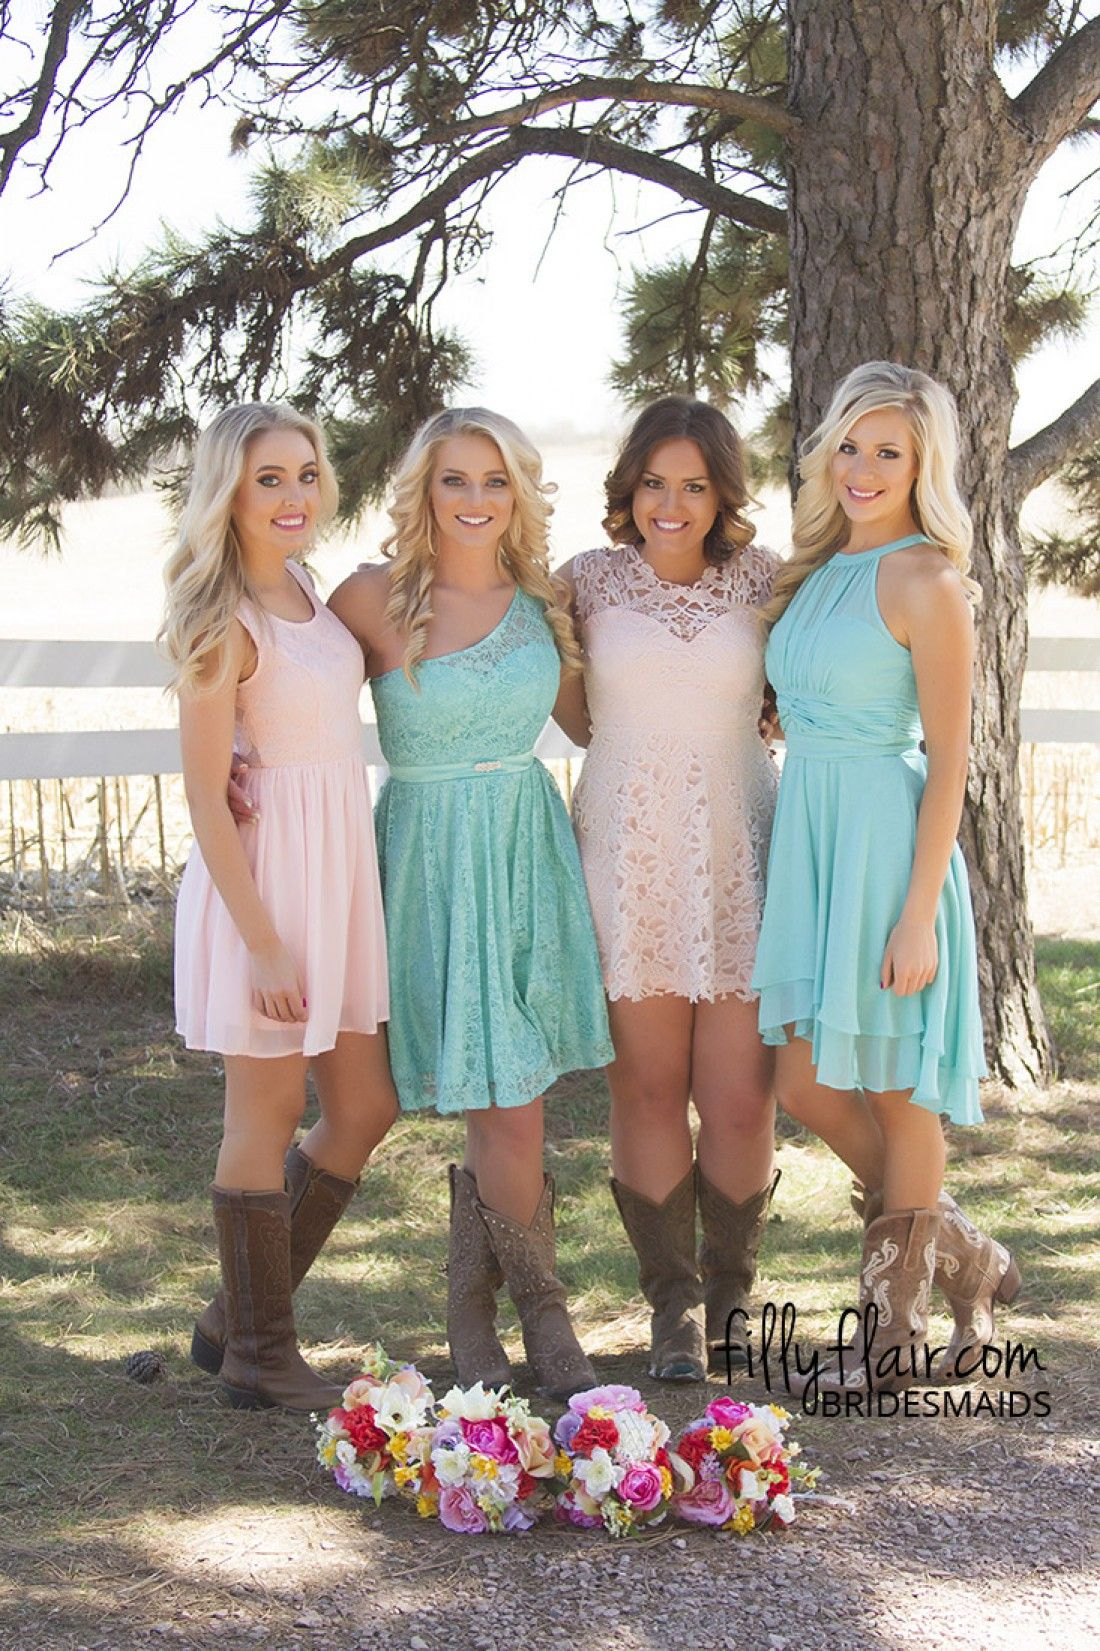 Bridesmaid dresses with boots are perfect for a country